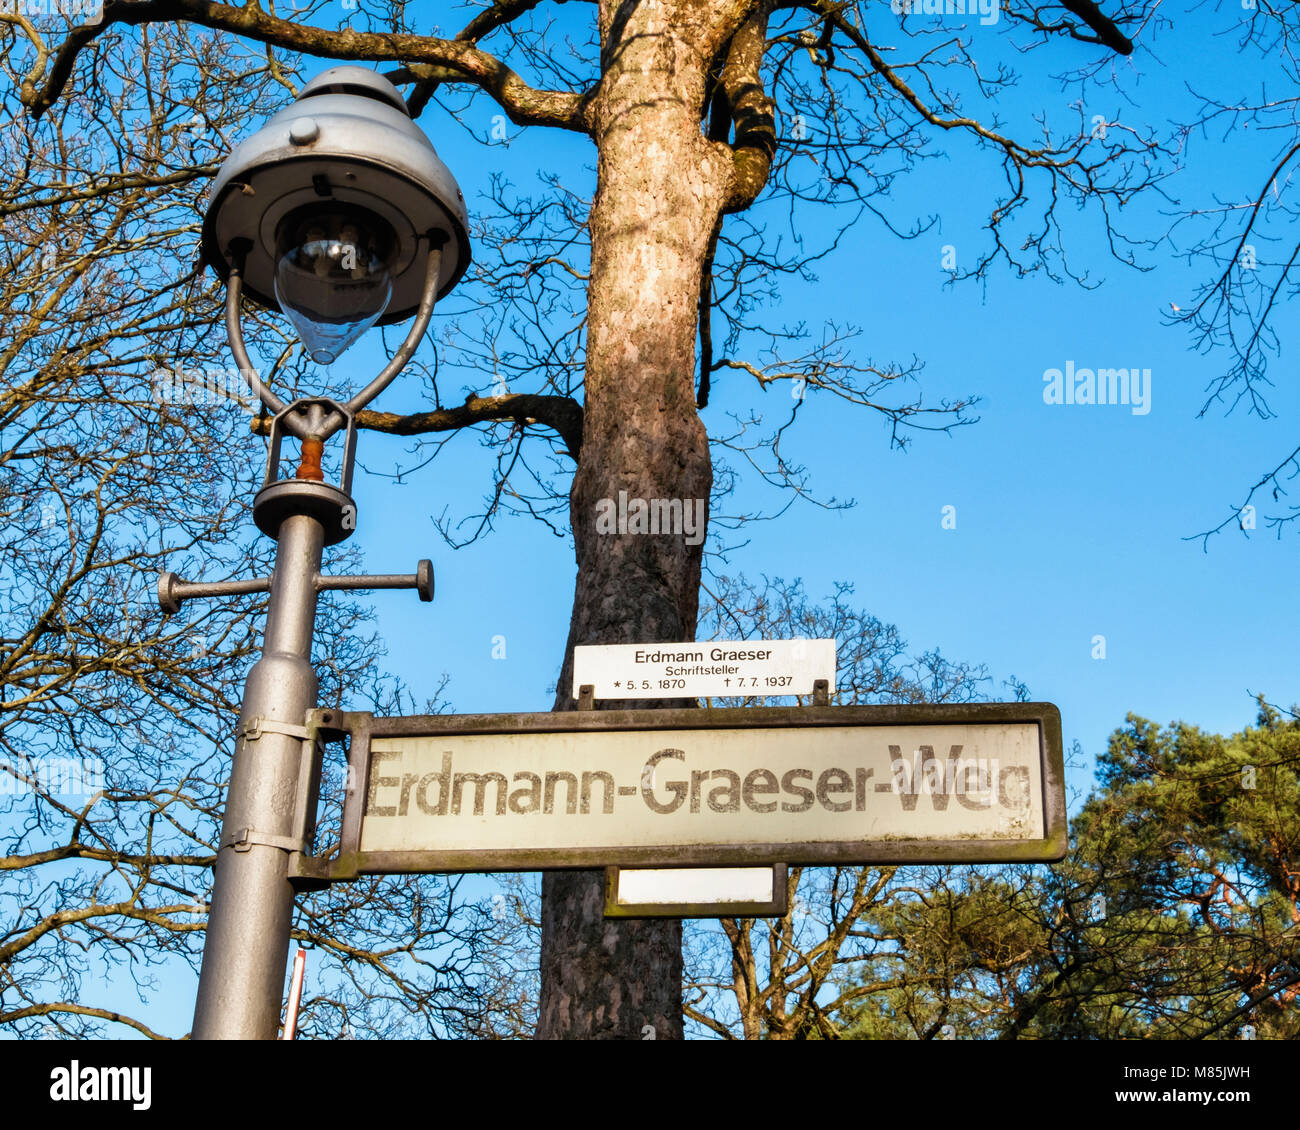 Berlin street sign, Erdmann Graeser weg. Road named after writer with historic old street lamp and blue sky - Stock Image